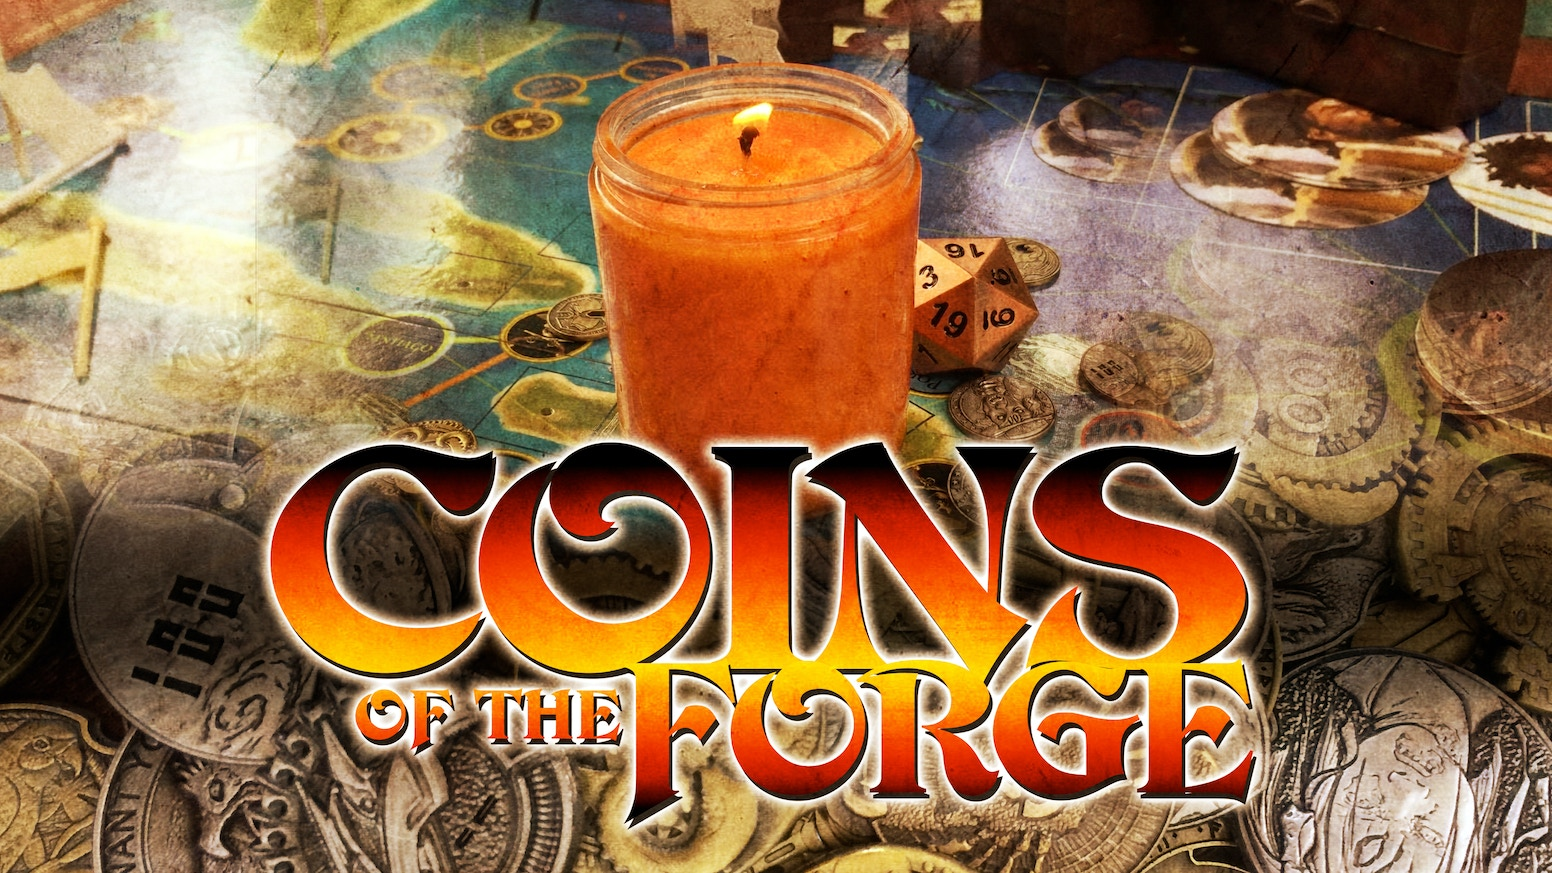 A candle set meant to enhance your tabletop gaming with evocative scents and beautifully designed metal coins!